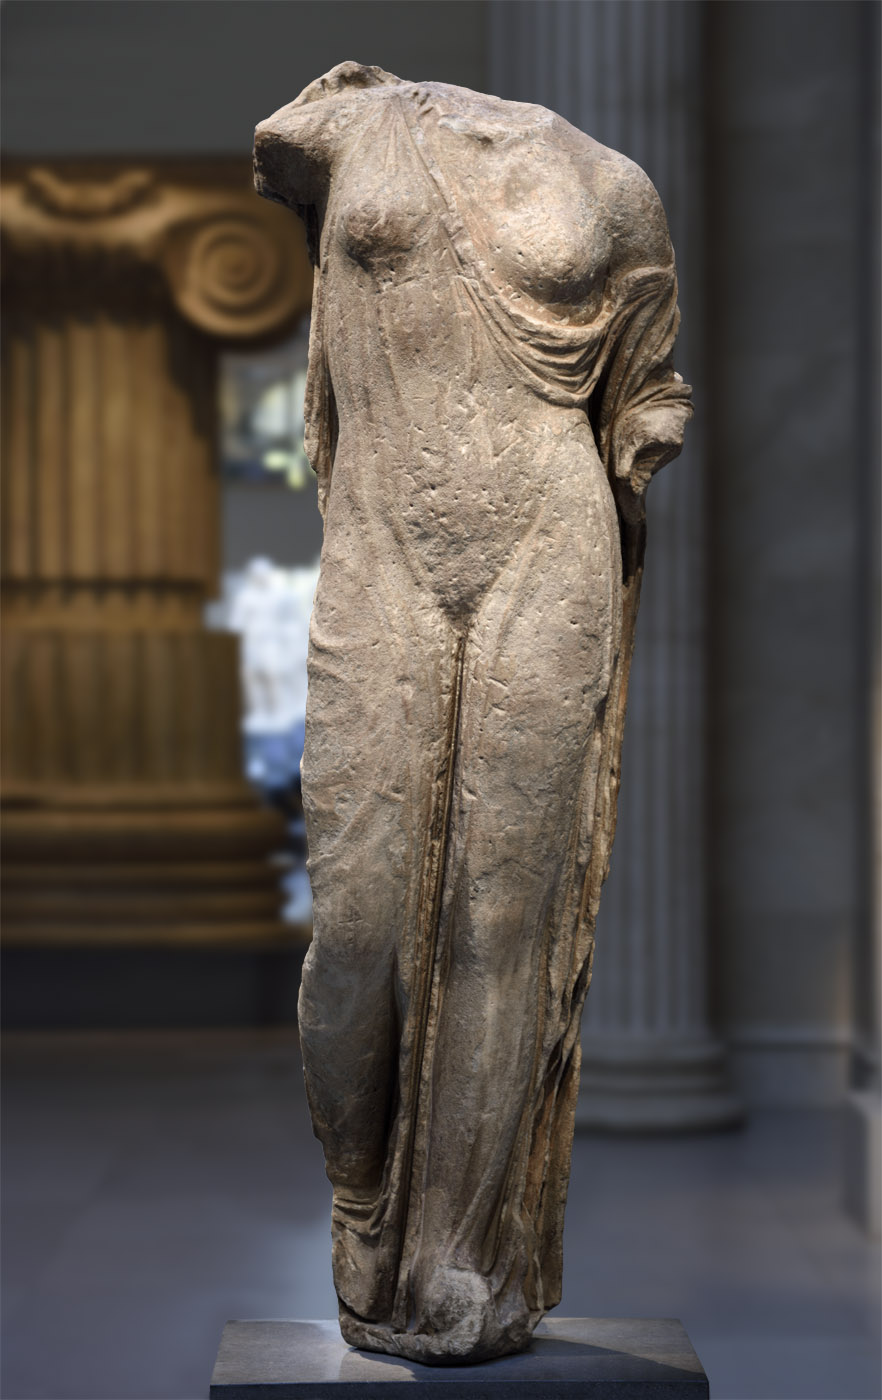 Statue of Venus Genetrix. Marble. Roman copy of 1st—2nd cent. CE of a Greek bronze statue of the late 5th century BCE, attributed to Callimachus. Inv. No. 32.11.3. New York, the Metropolitan Museum of Art